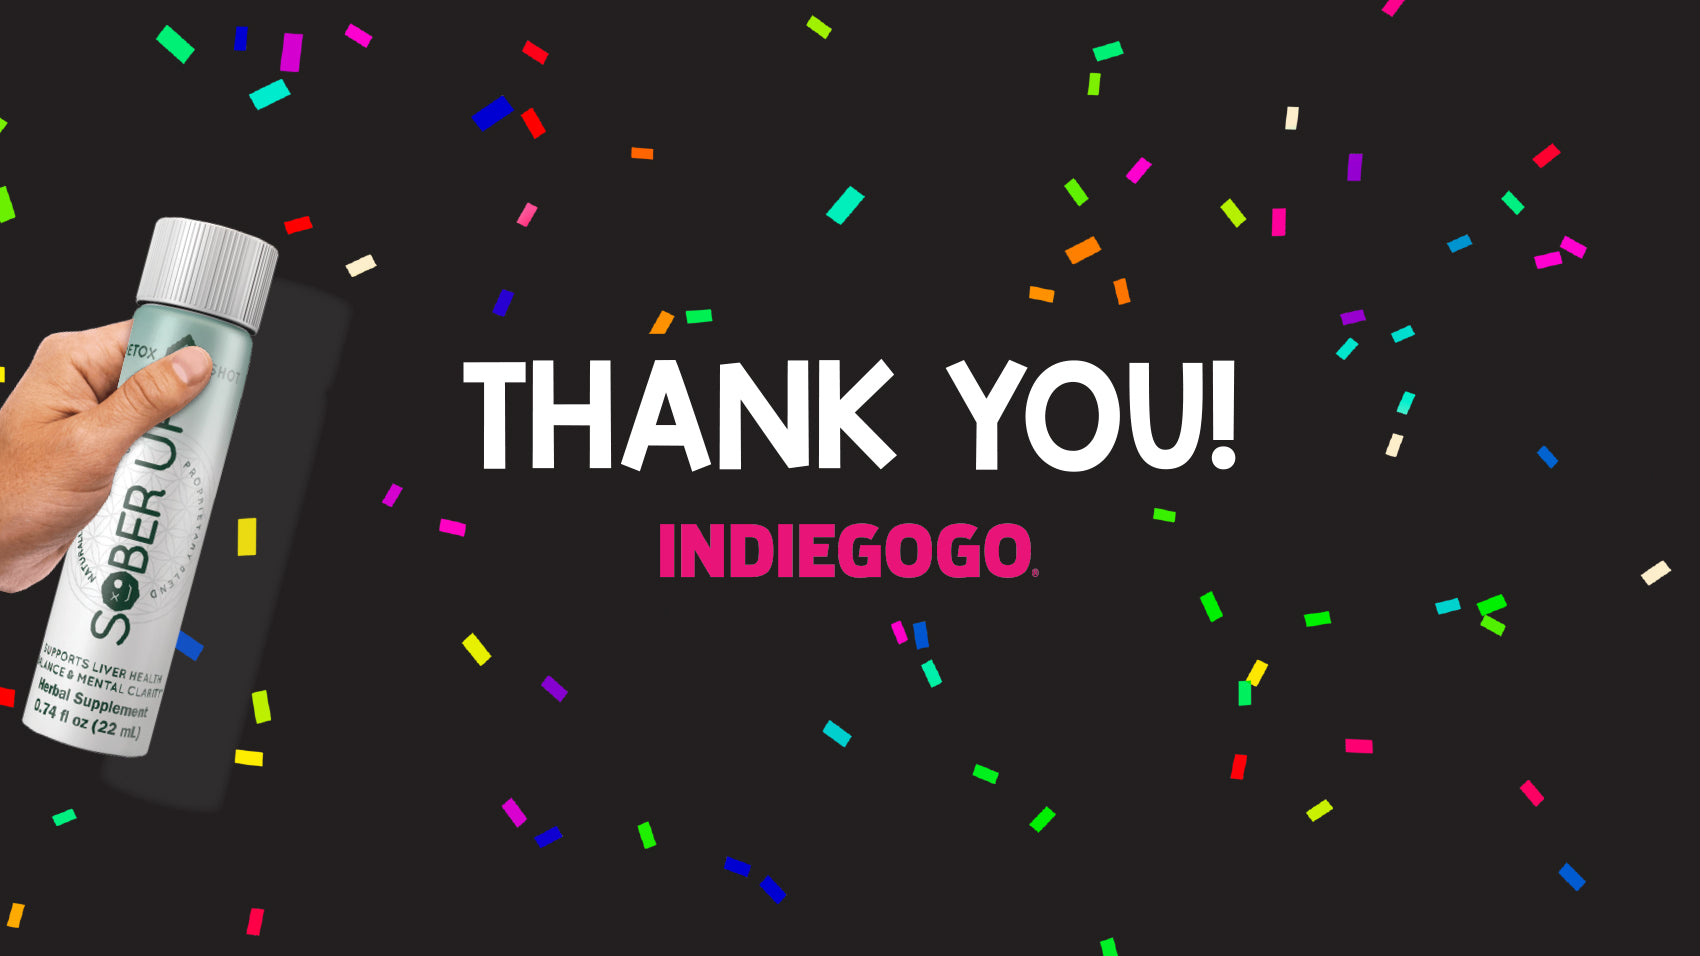 Thank you: Indiegogo ends and our next chapter begins